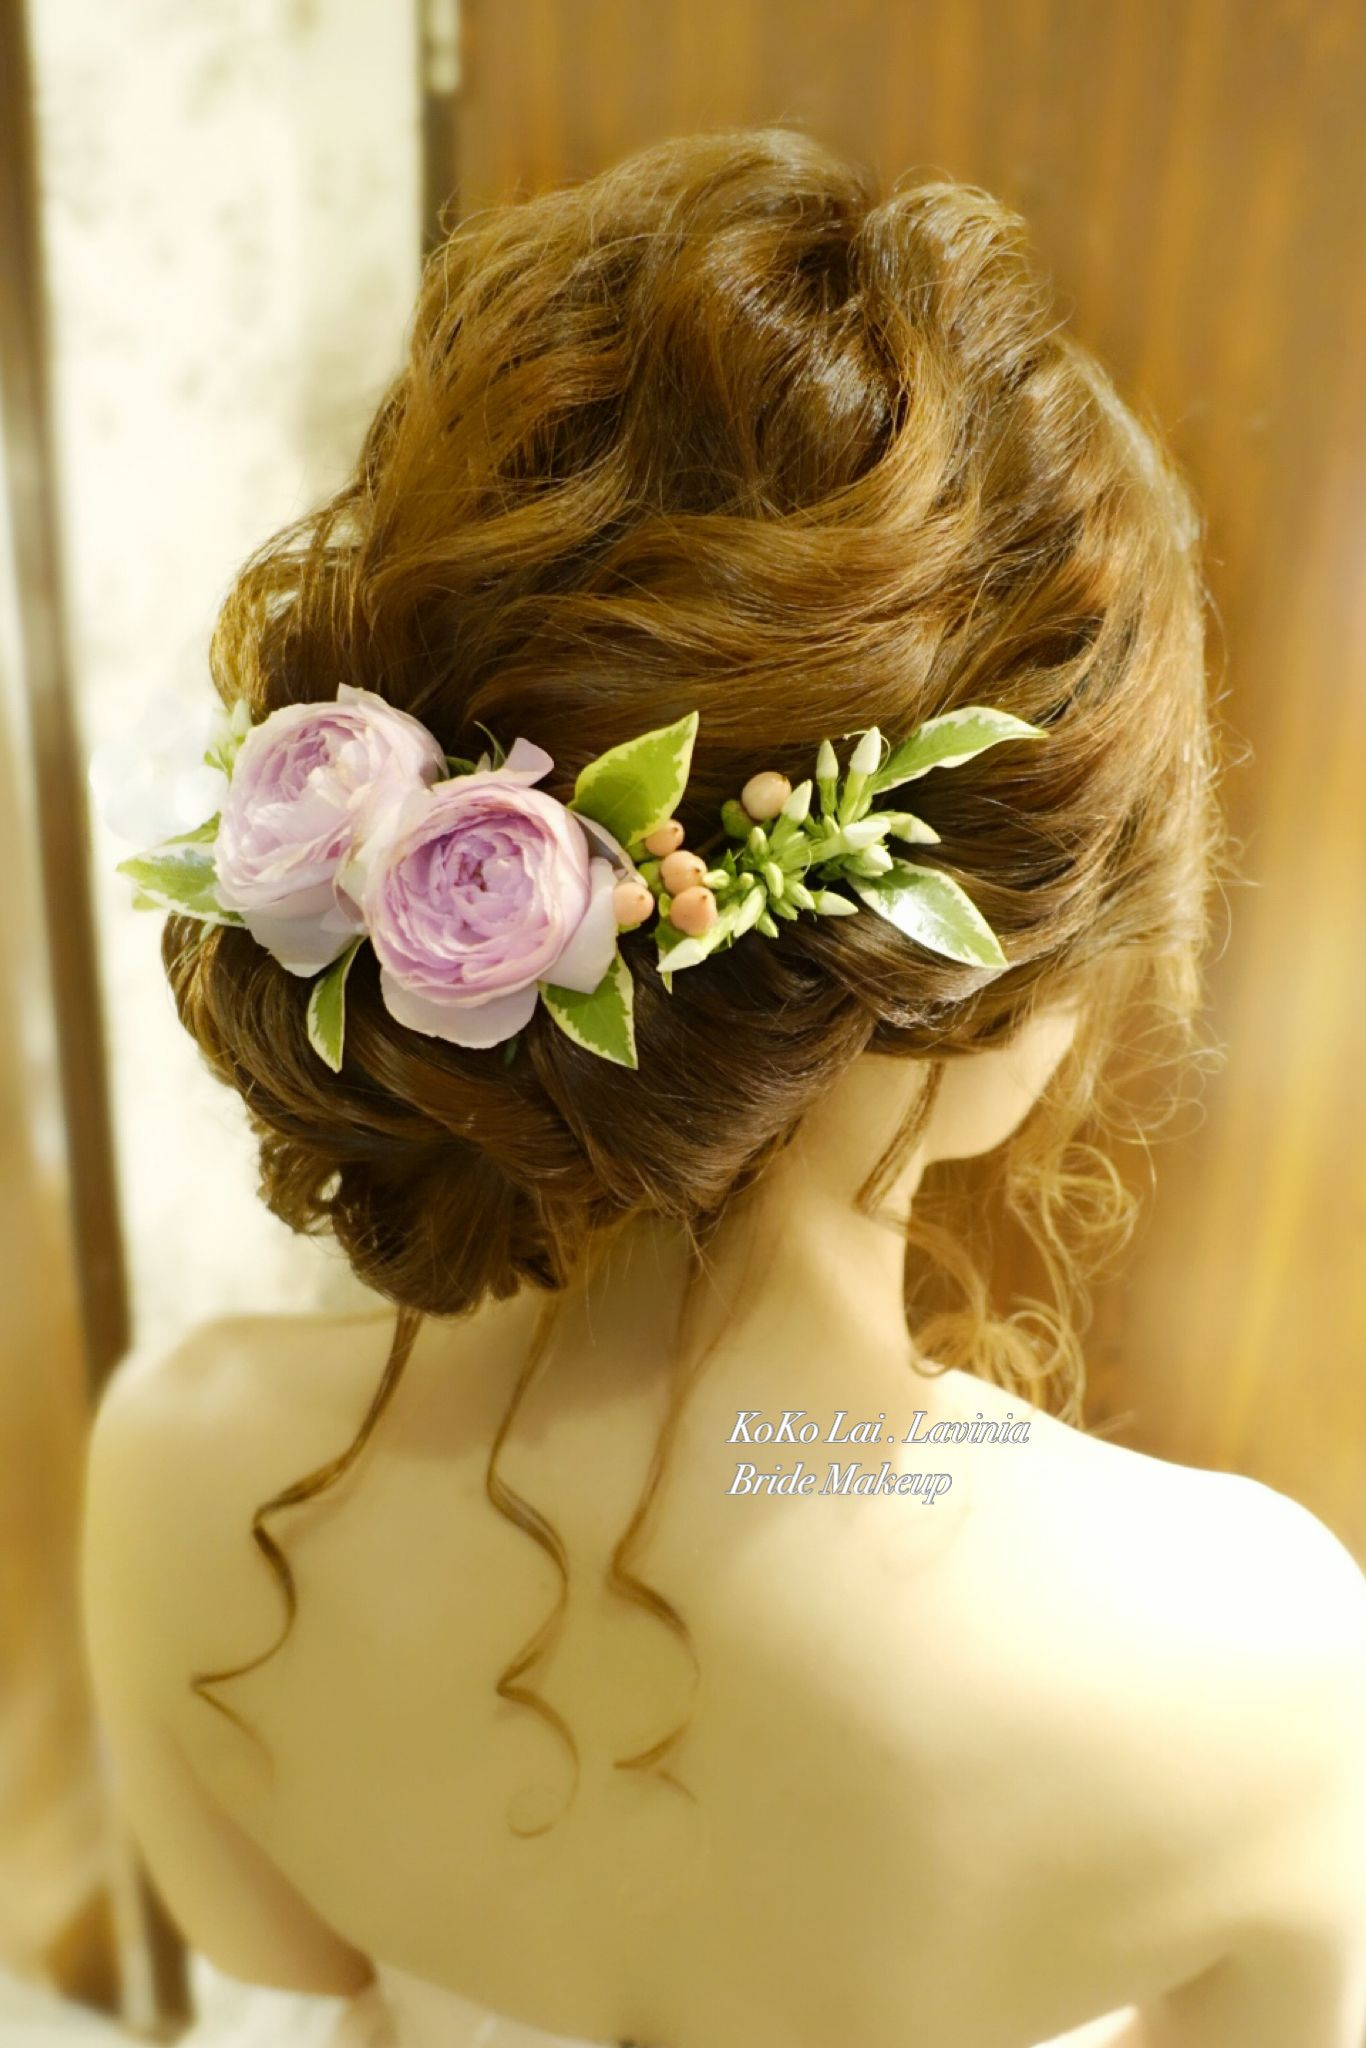 Wedding hair in 2019 Makeup artist near me, Wedding